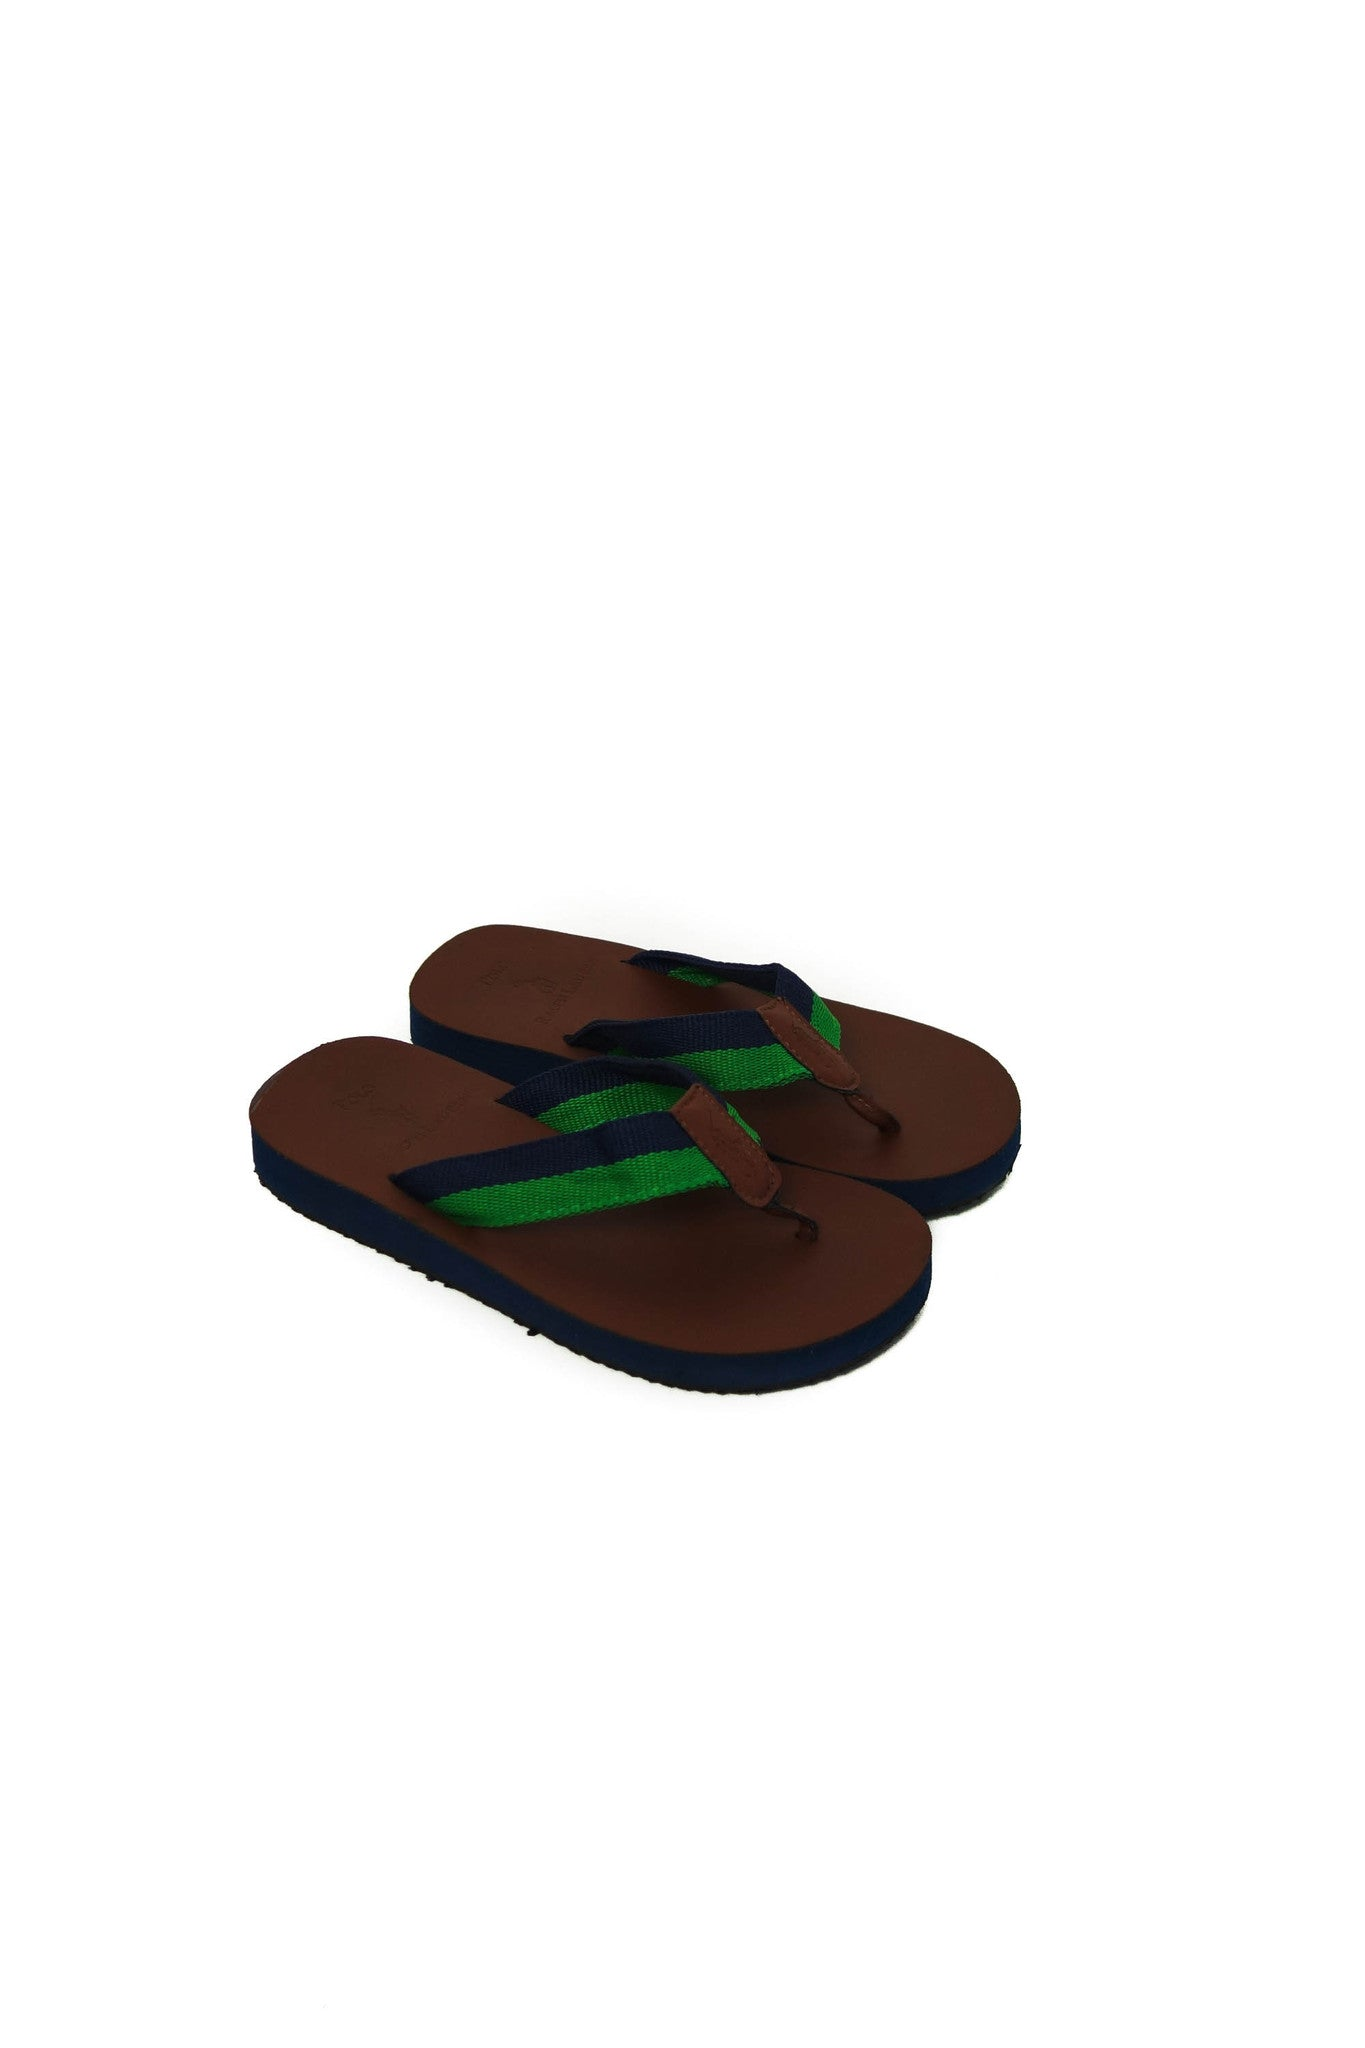 10003329 Polo Ralph Lauren Kids~Flip Flops 6T (US 13) at Retykle